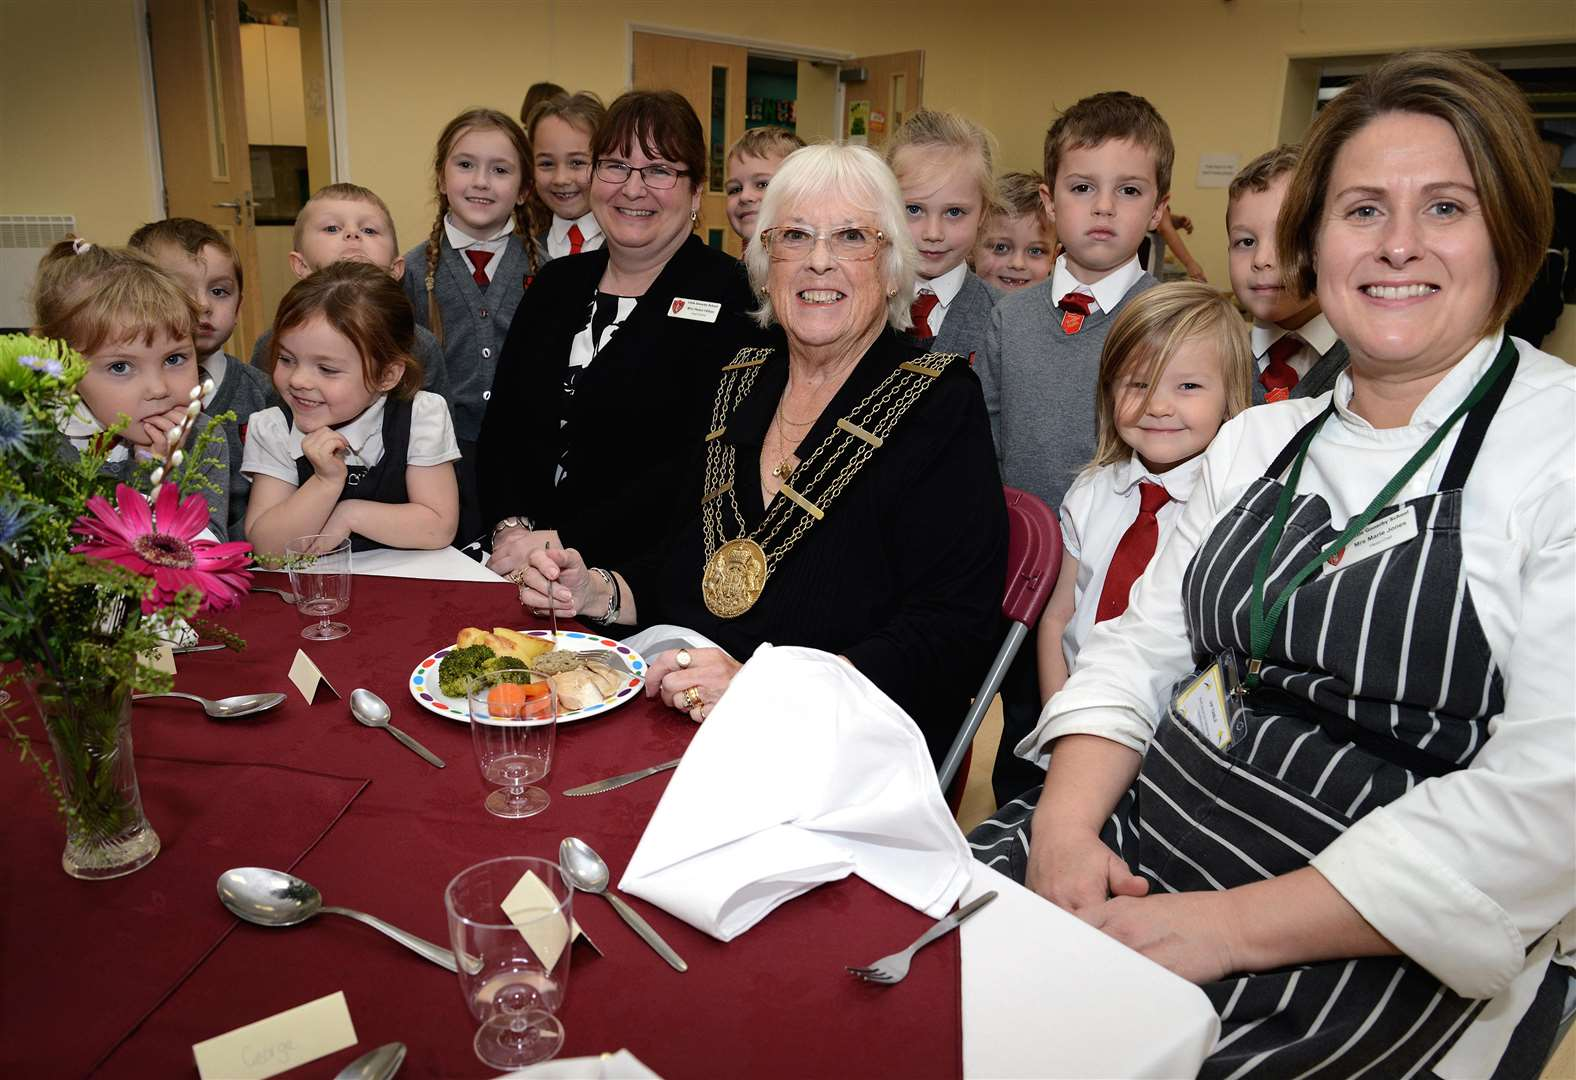 The Mayor of Grantham, Coun Lynda Coutts, joins pupils at Little Gonerby Infant School for lunch together with head chef Marie Jones, right. (5550751)